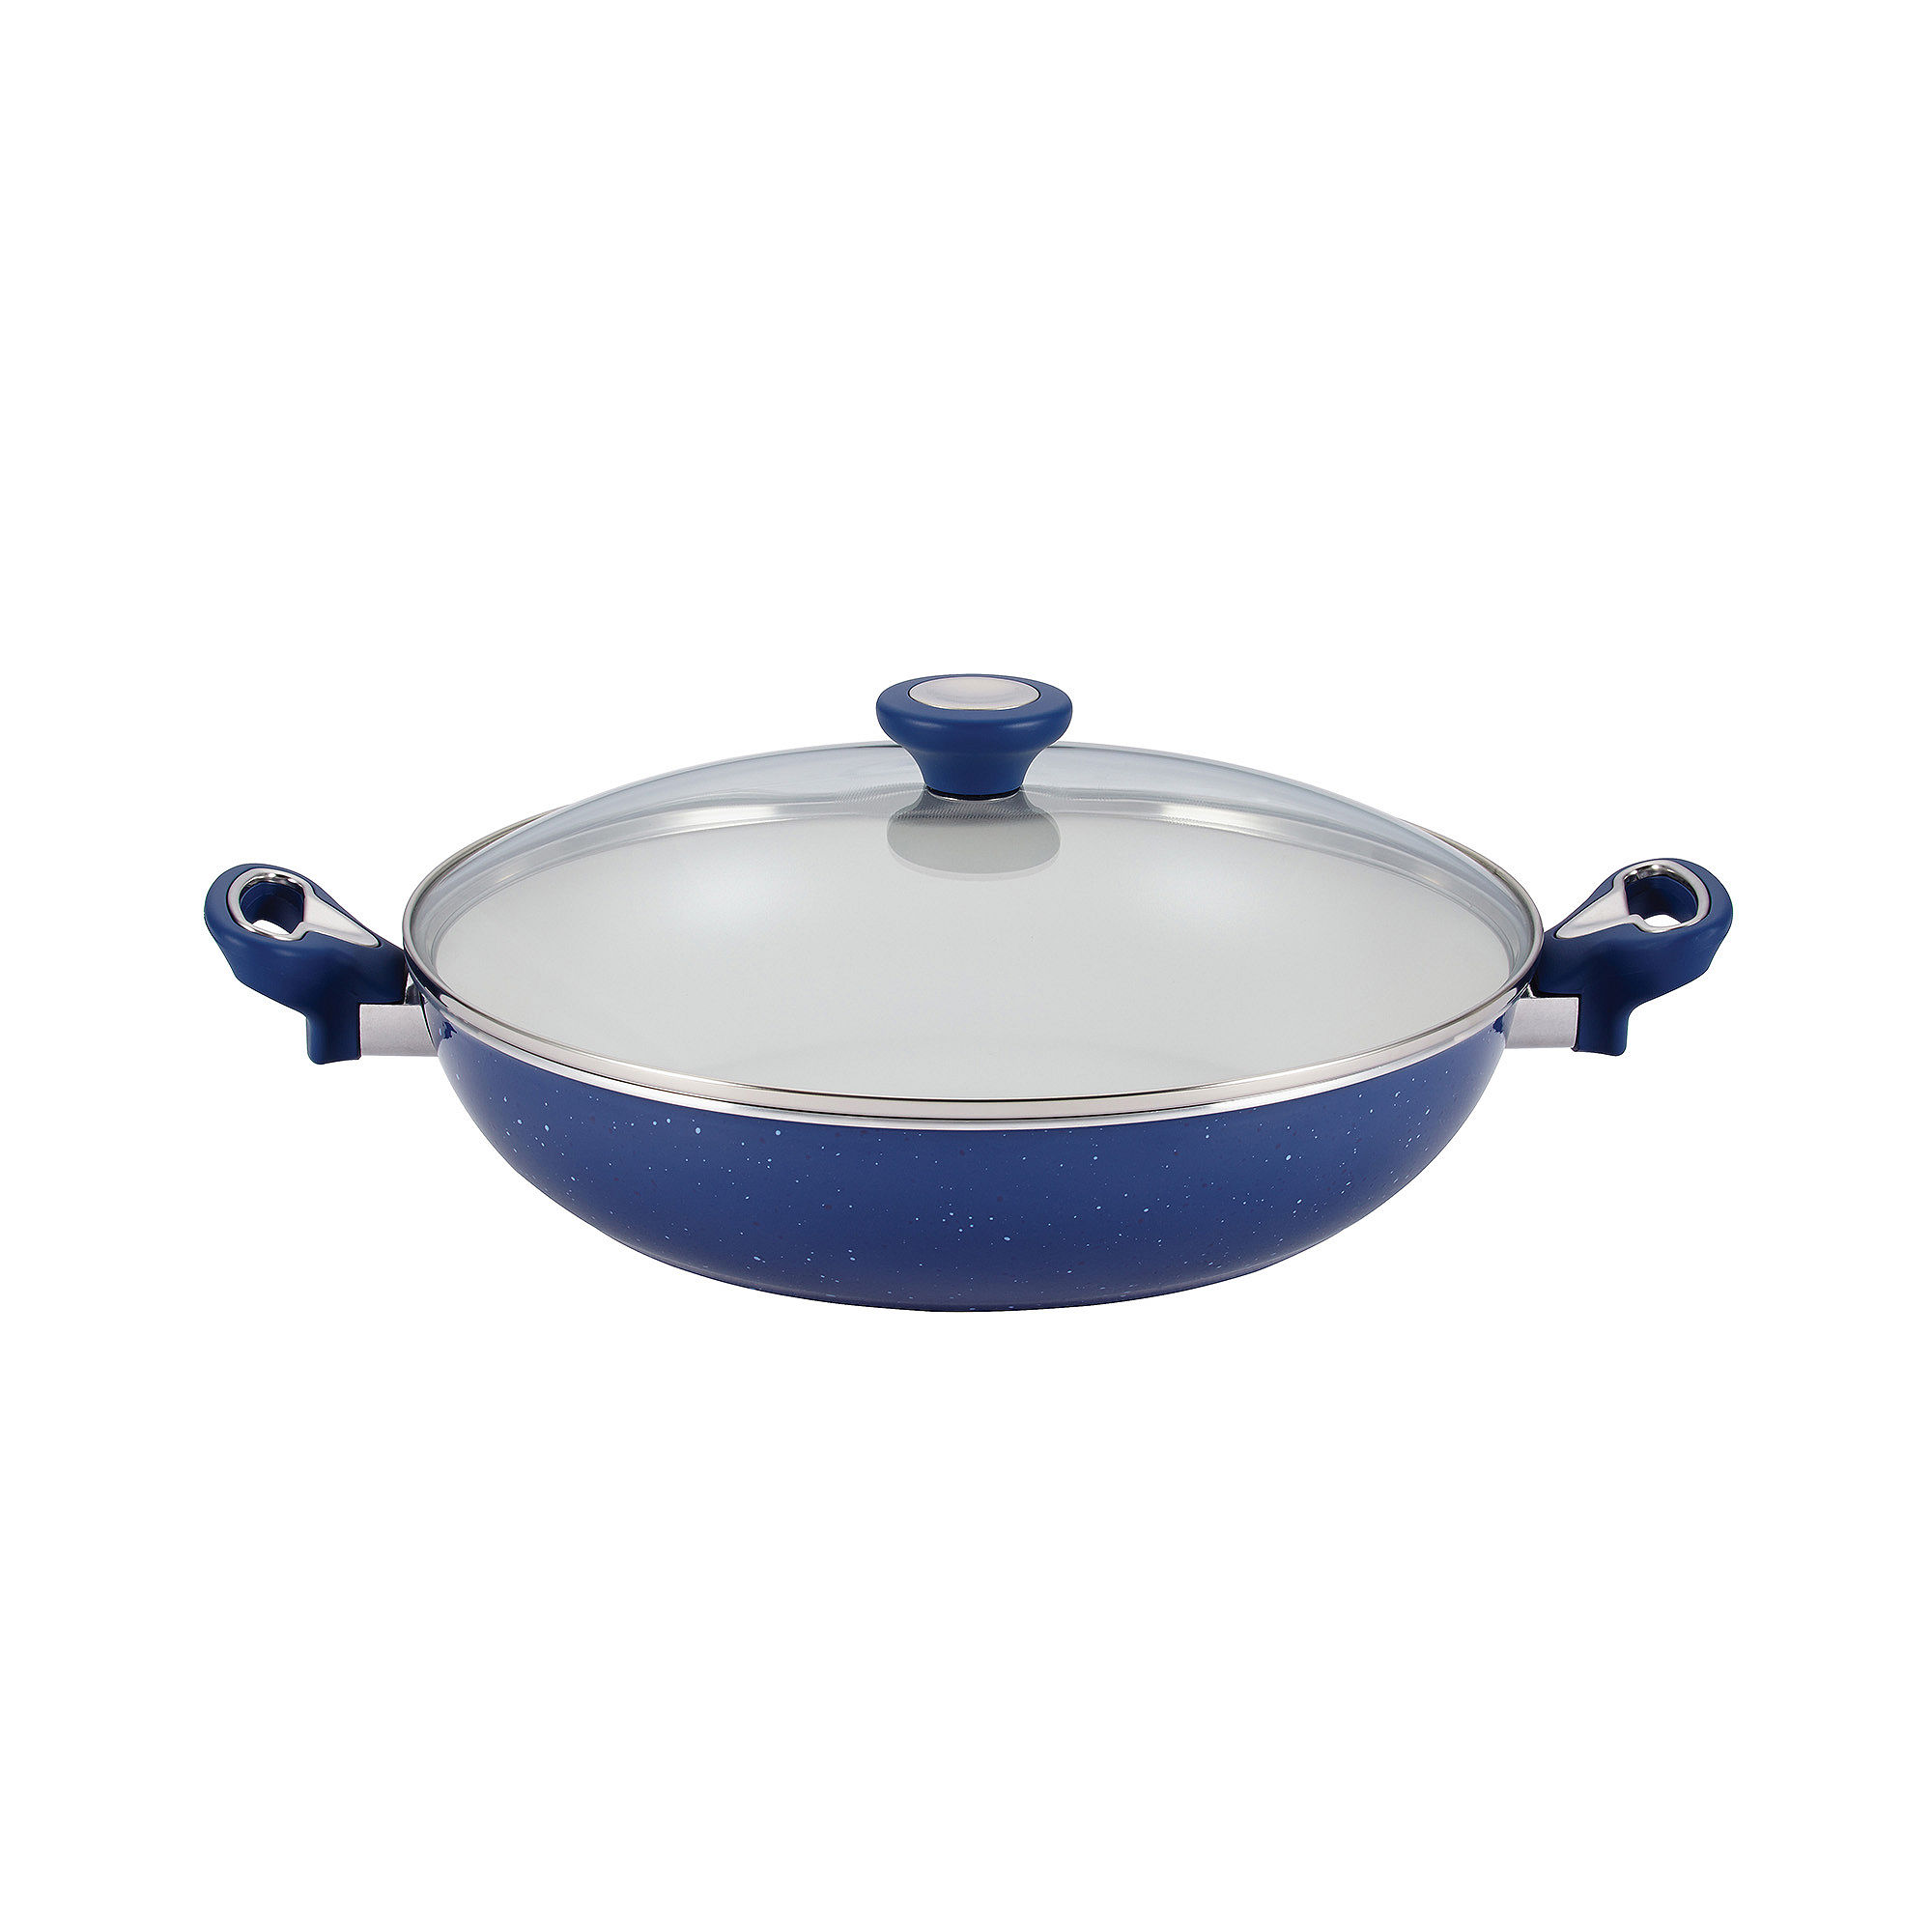 "Farberware New Traditions 12"" Nonstick Covered Skillet"